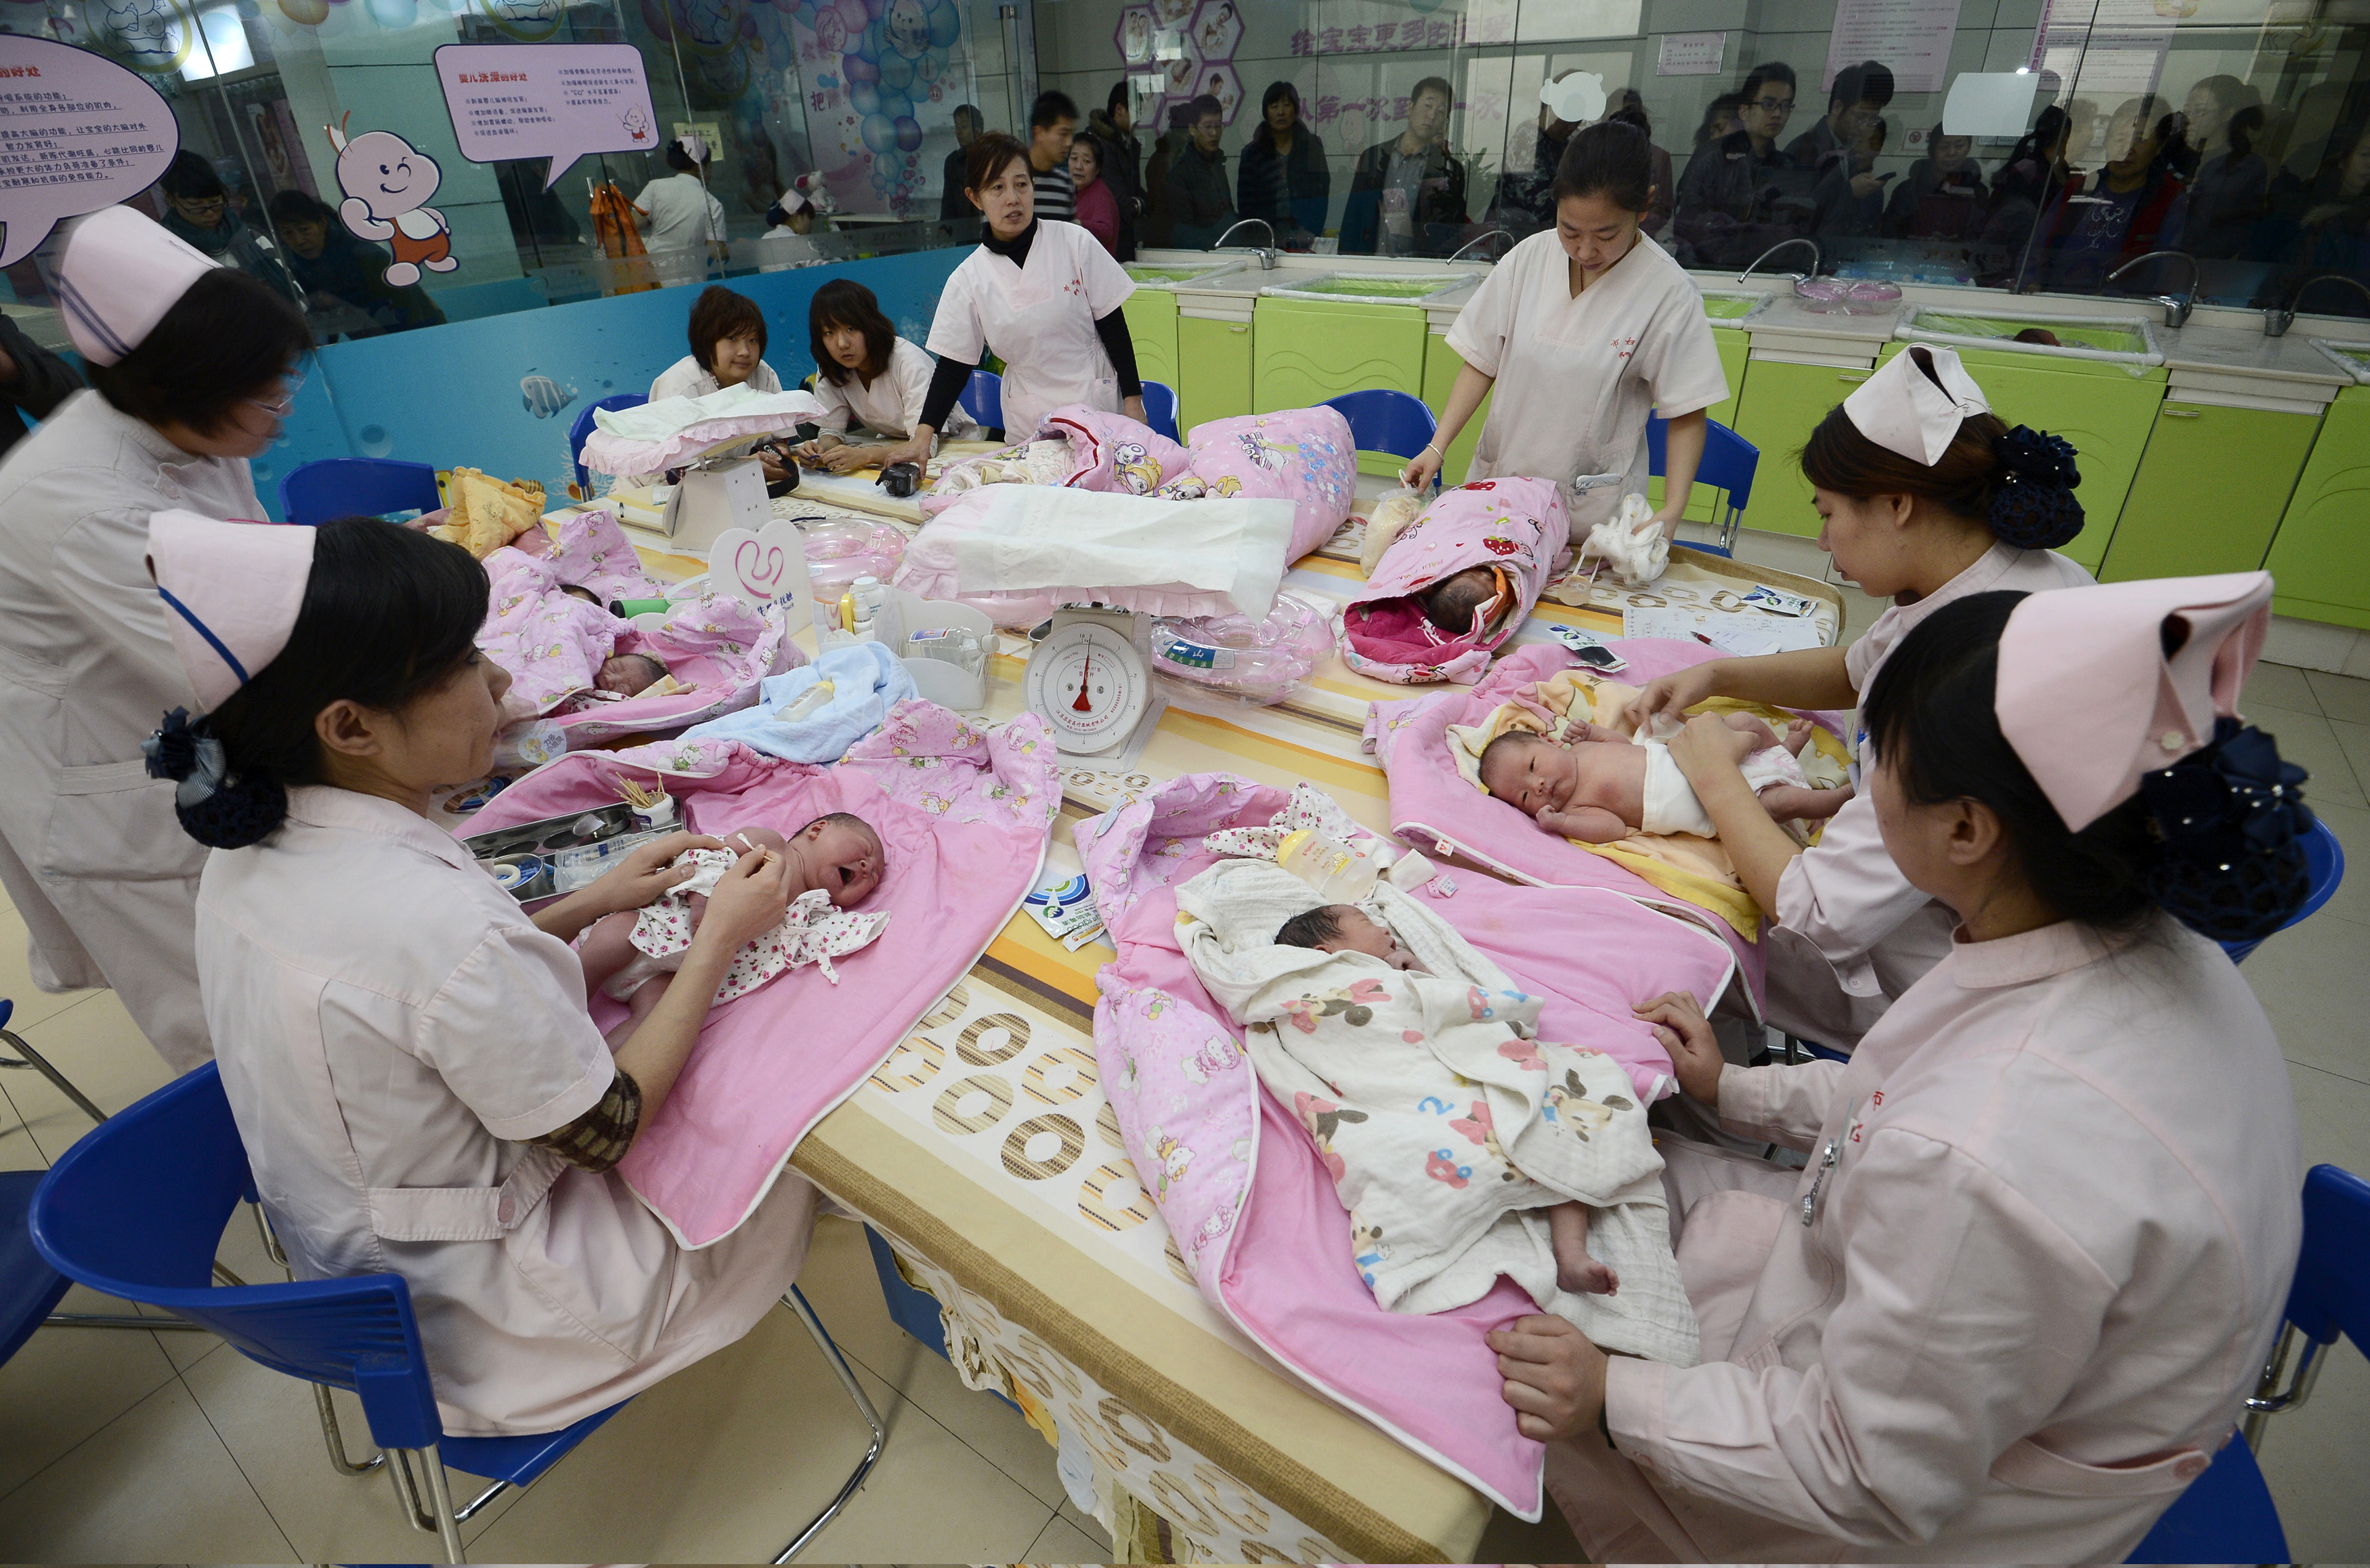 FILE - Infants undergo a daily medical examination at a maternal and child health care hospital in Taiyuan, Shanxi province, Dec. 3, 2012. Analysts say China's new two-child policy could spur economy.